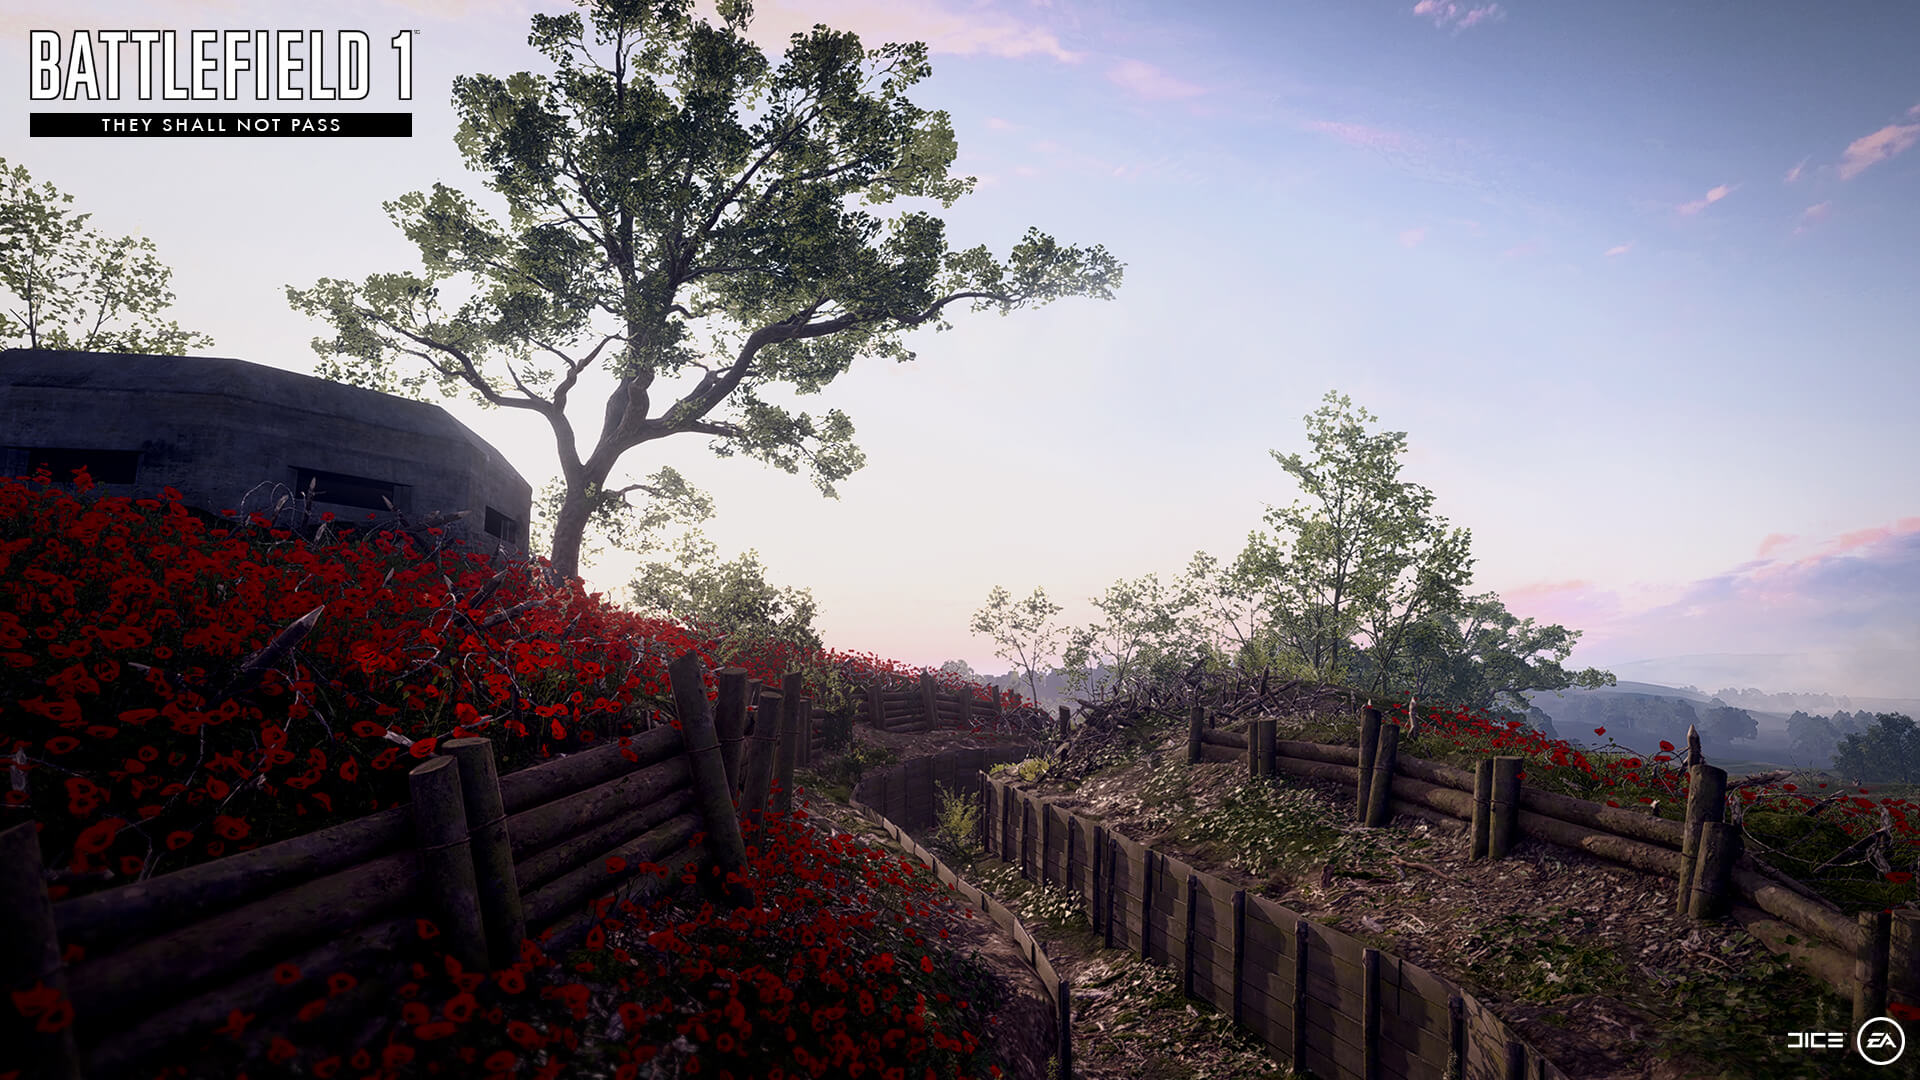 battlefield_1_they_shall_not_pass (1)